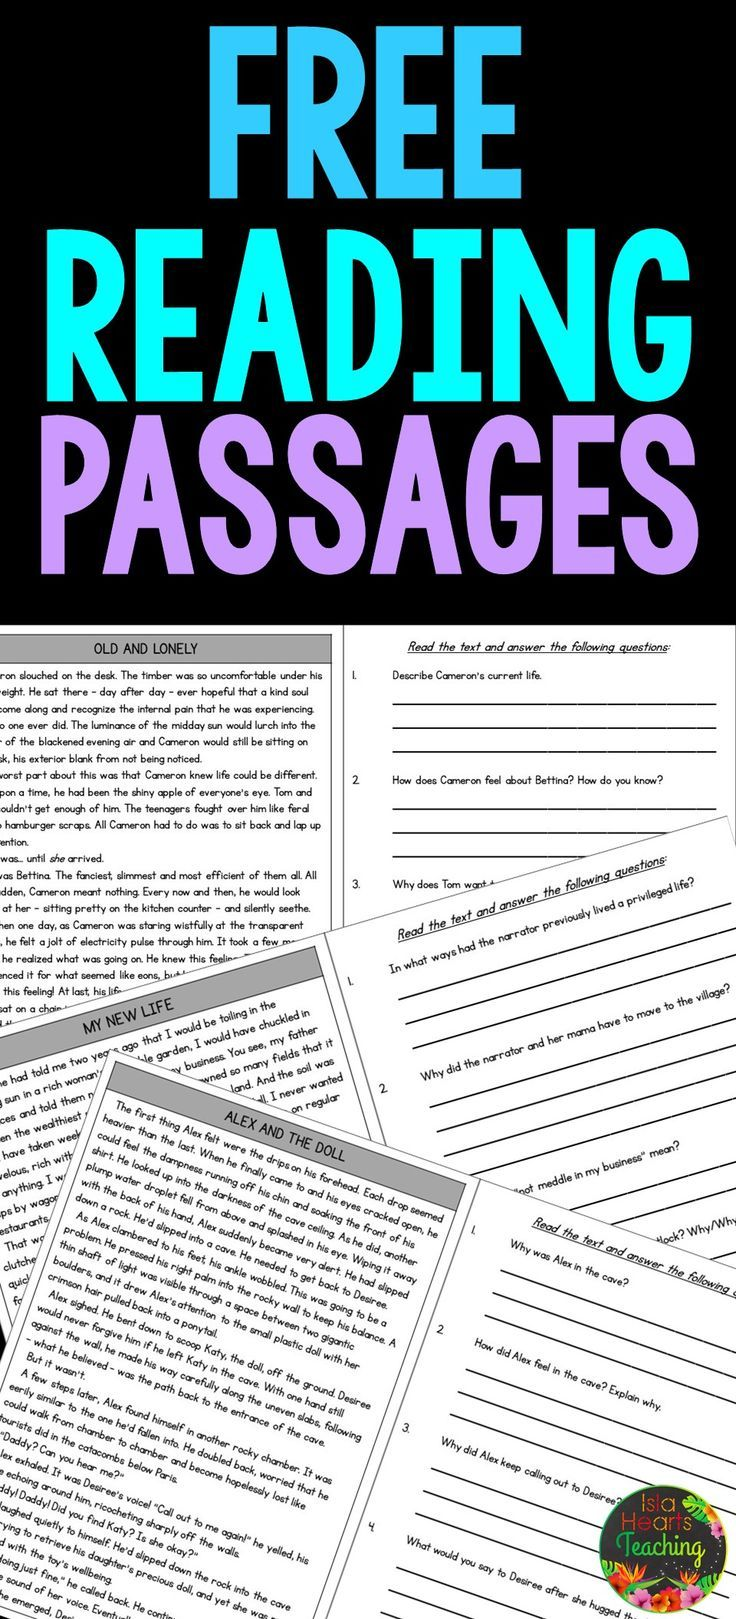 Free Reading Comprehension Passages And Questions For Students In Thir Comprehension Passage Reading Comprehension Passages Reading Comprehension Passages Free [ 1619 x 736 Pixel ]